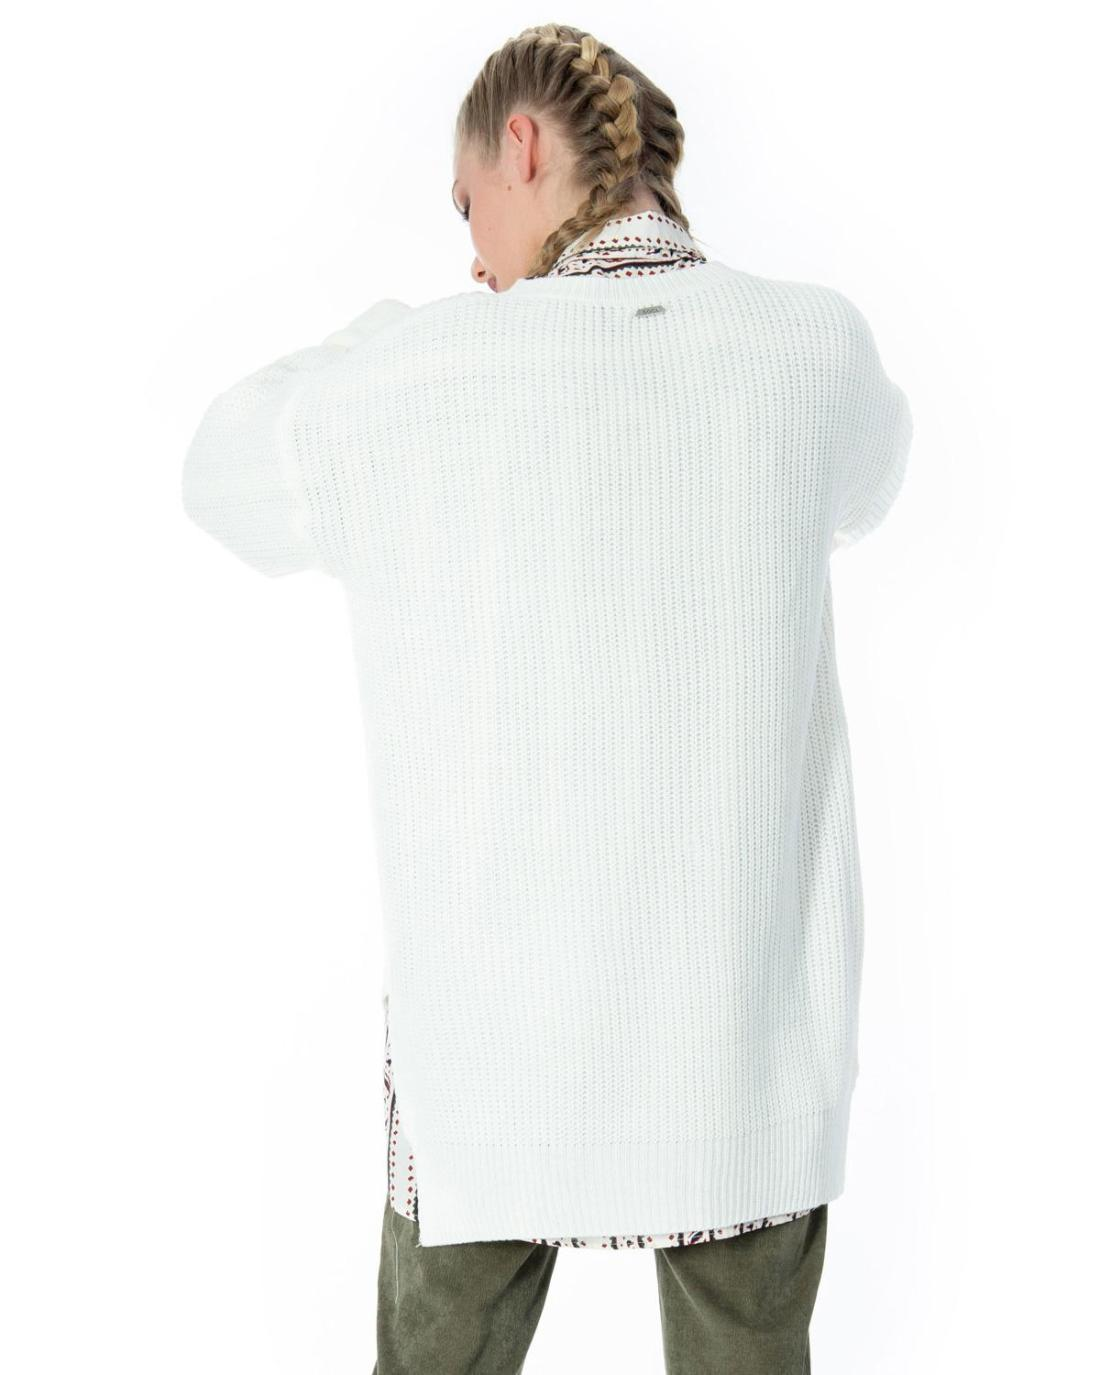 new products f08e3 fdee8 Weißer Pullover